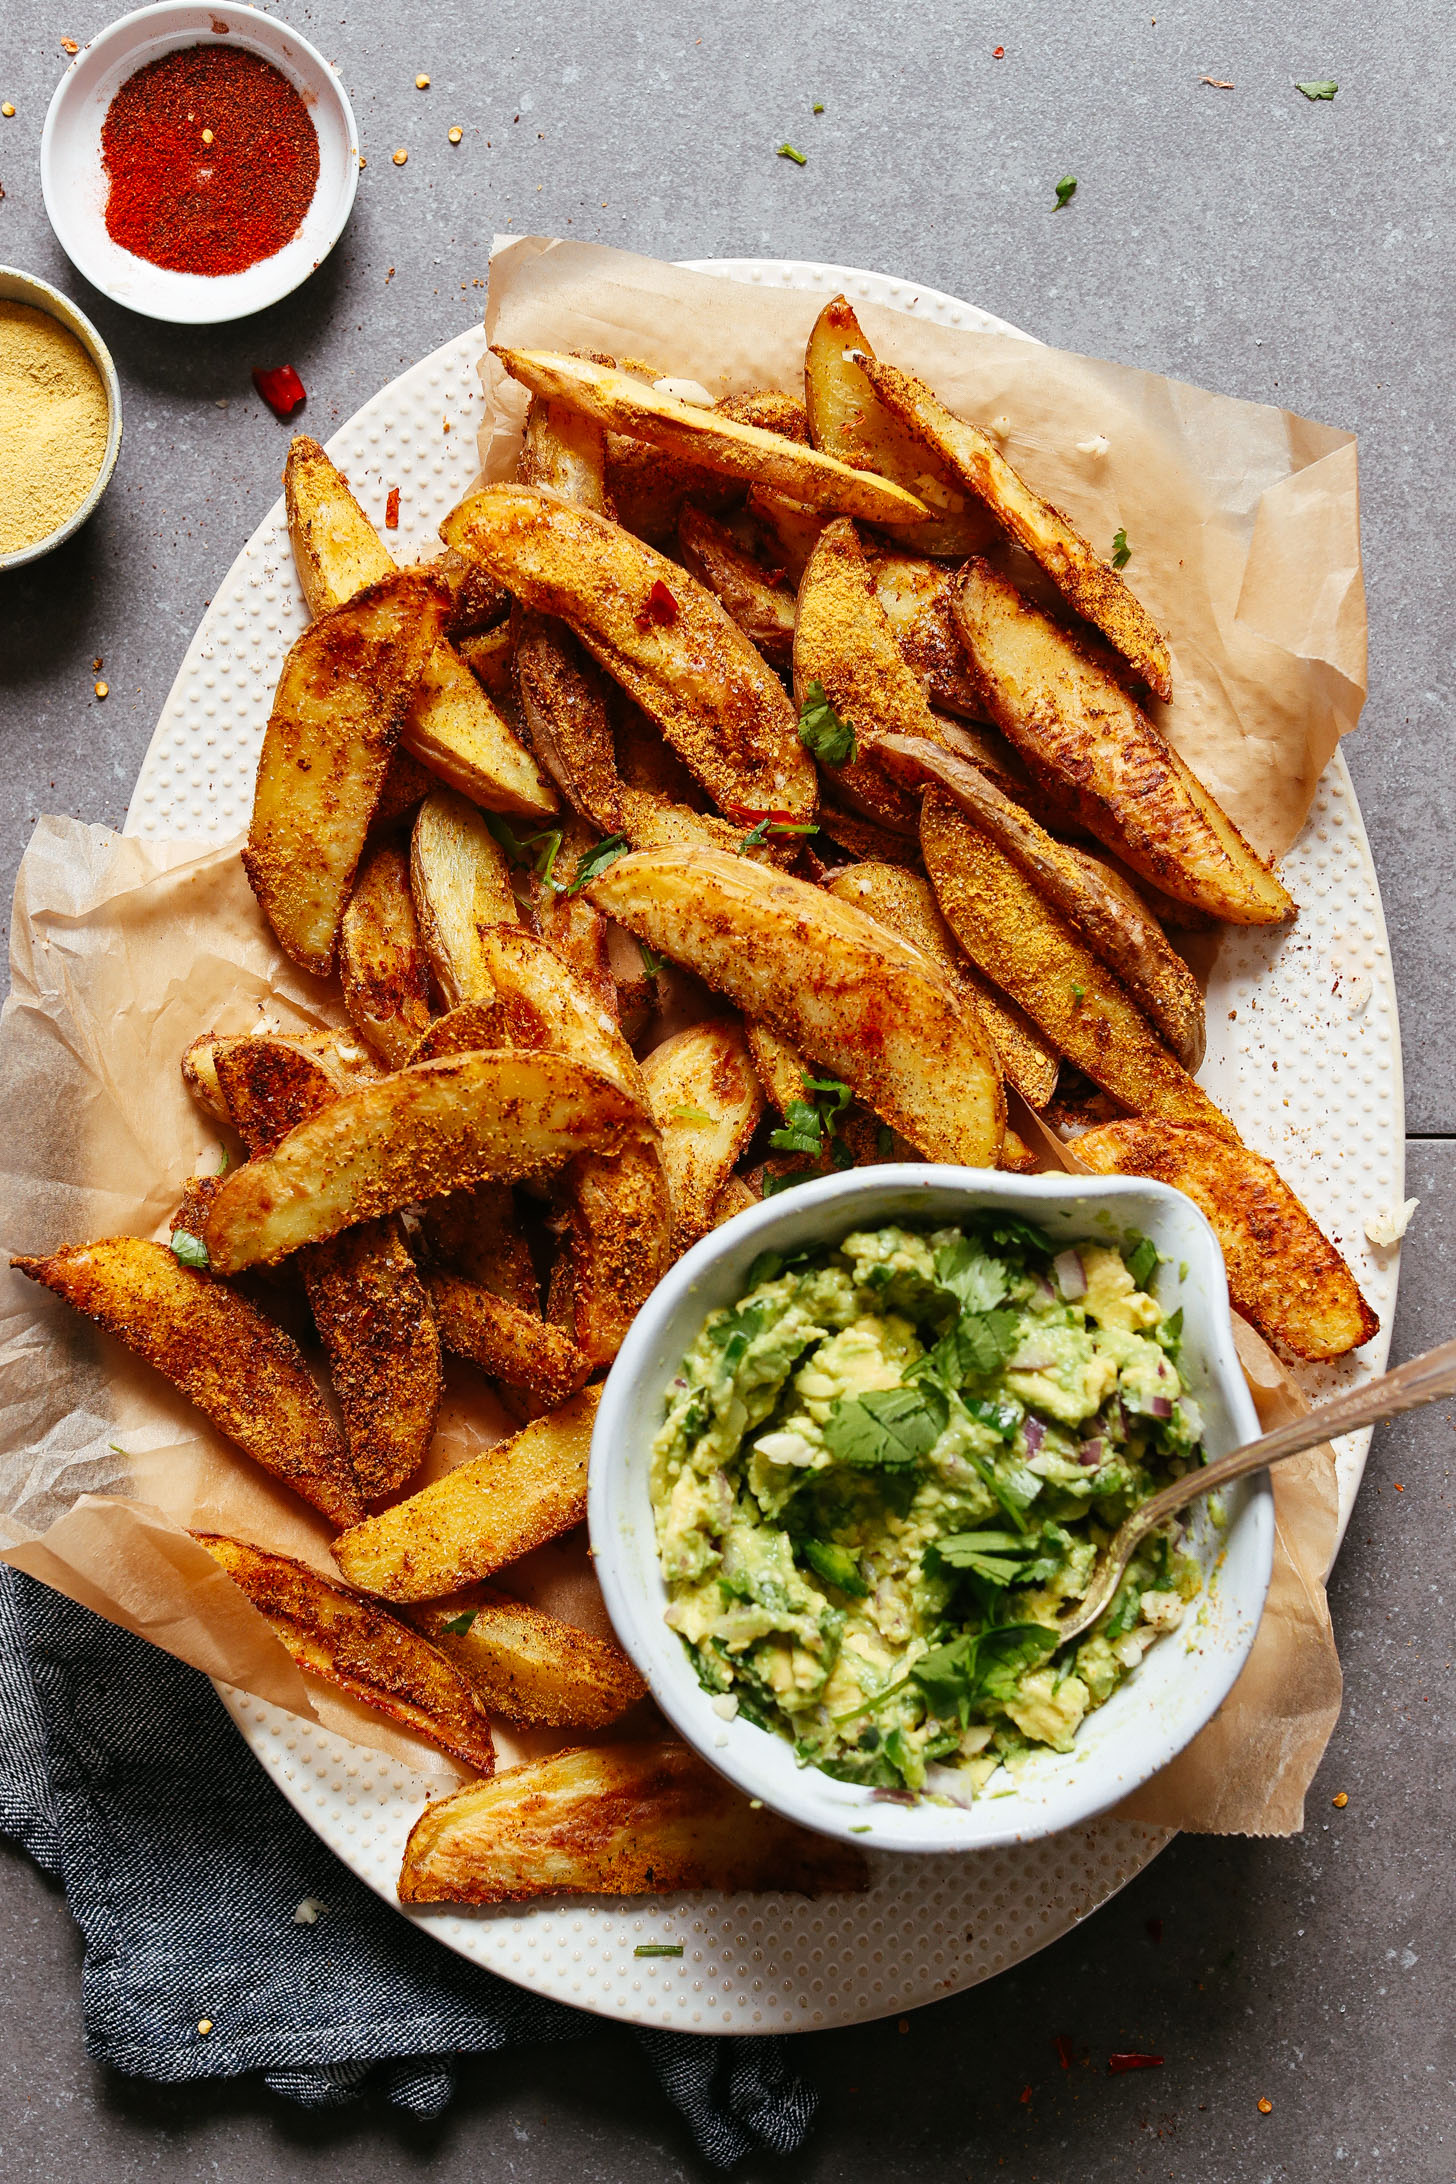 Platter full of Crispy Baked Oil-Free Potato Fries with Cheesy-Chili seasoning and a side of guac